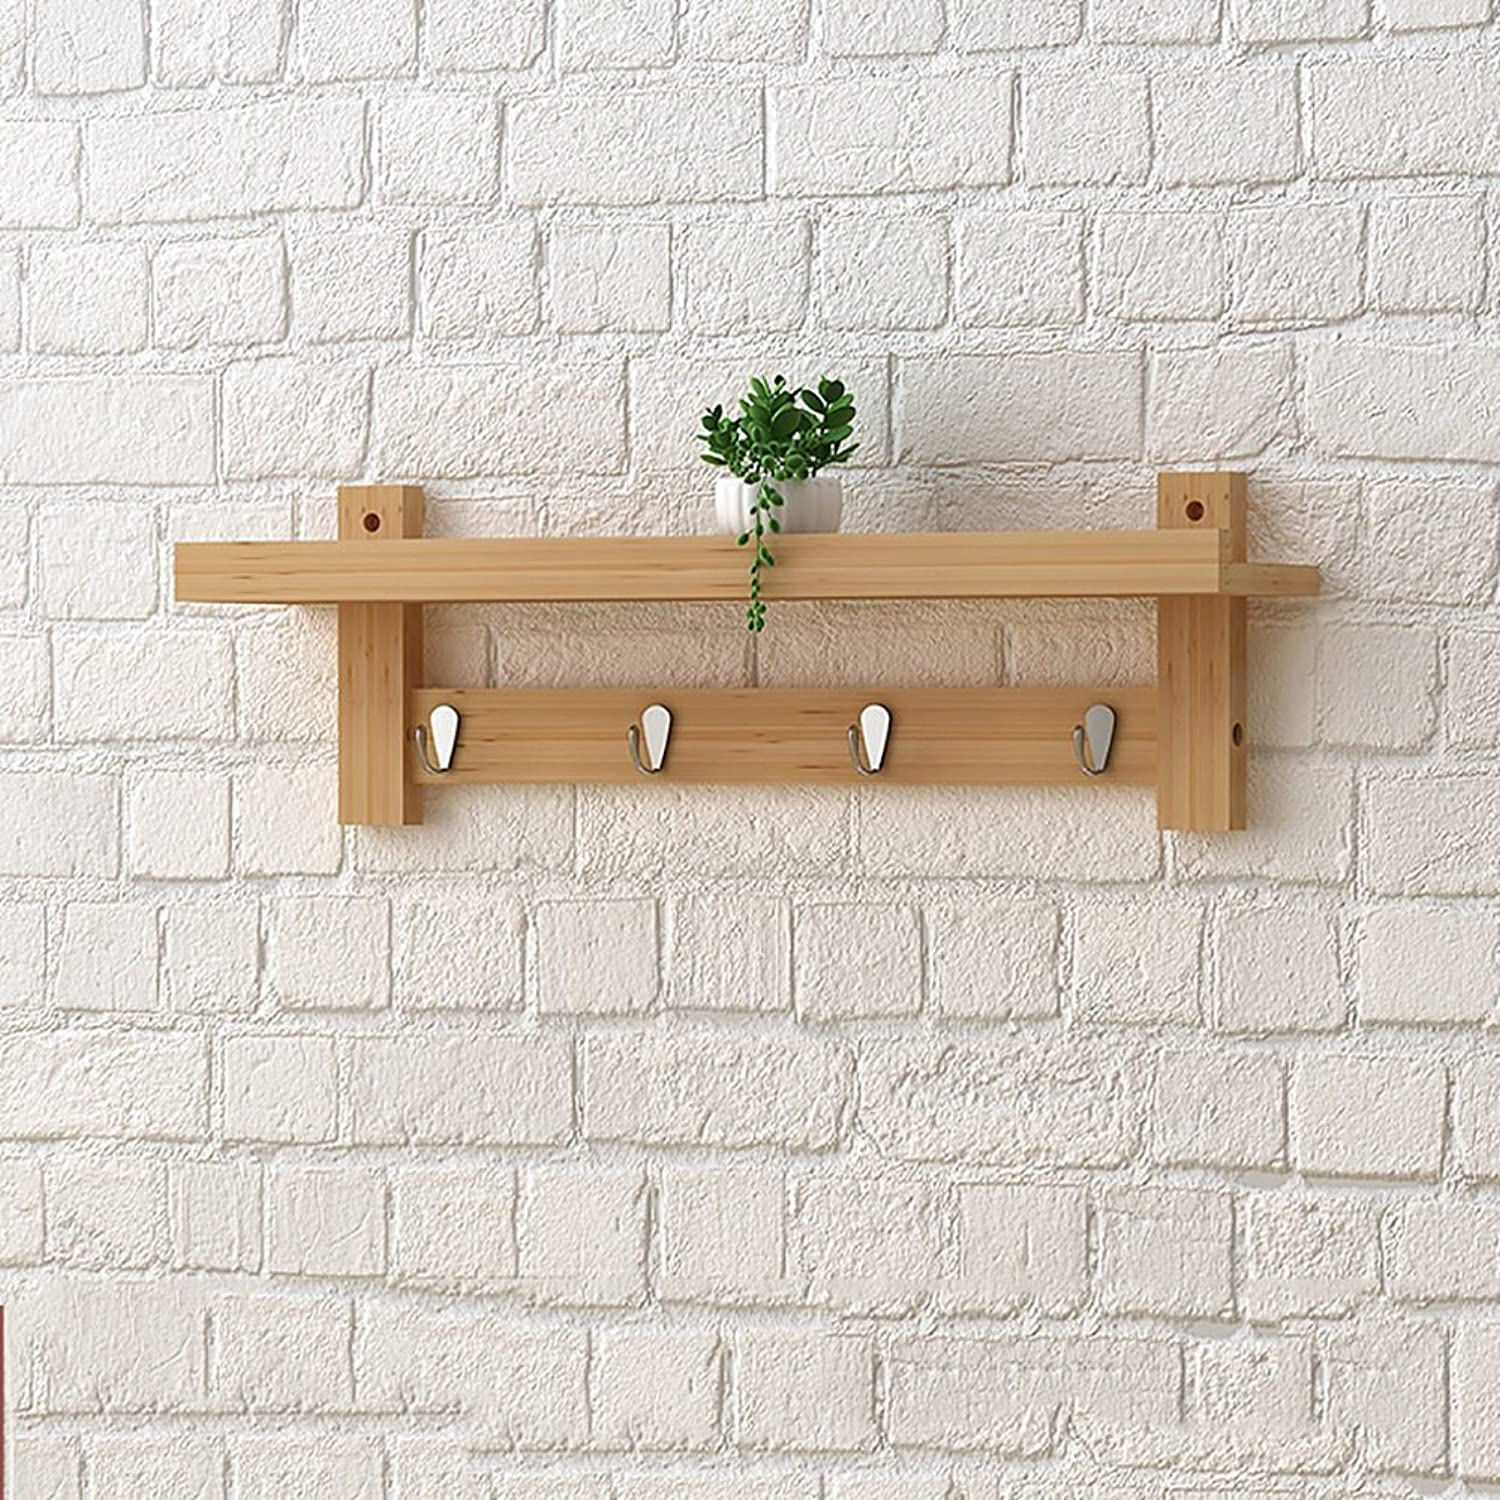 LFF- Bedroom Porch Wall Mounted Solid Wood Coat Rack Shelf Nordic Creative Wall Hanging Coat Hook Hanger Wall Hooks (color   Natural, Size   A)